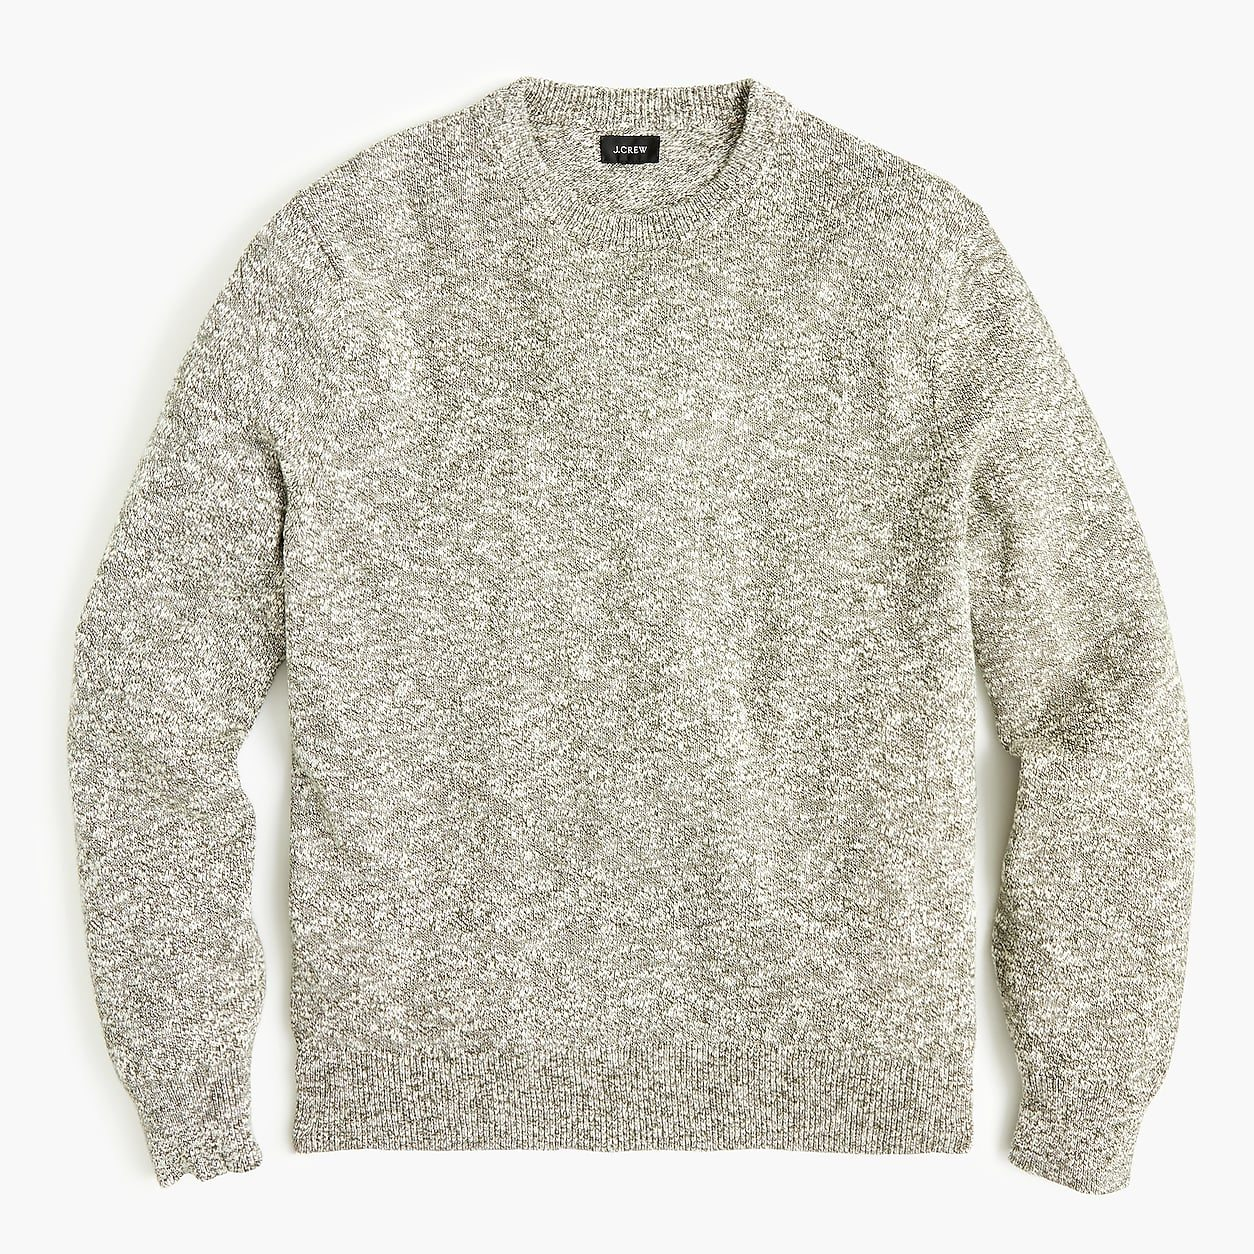 Heathered cotton crewneck sweater